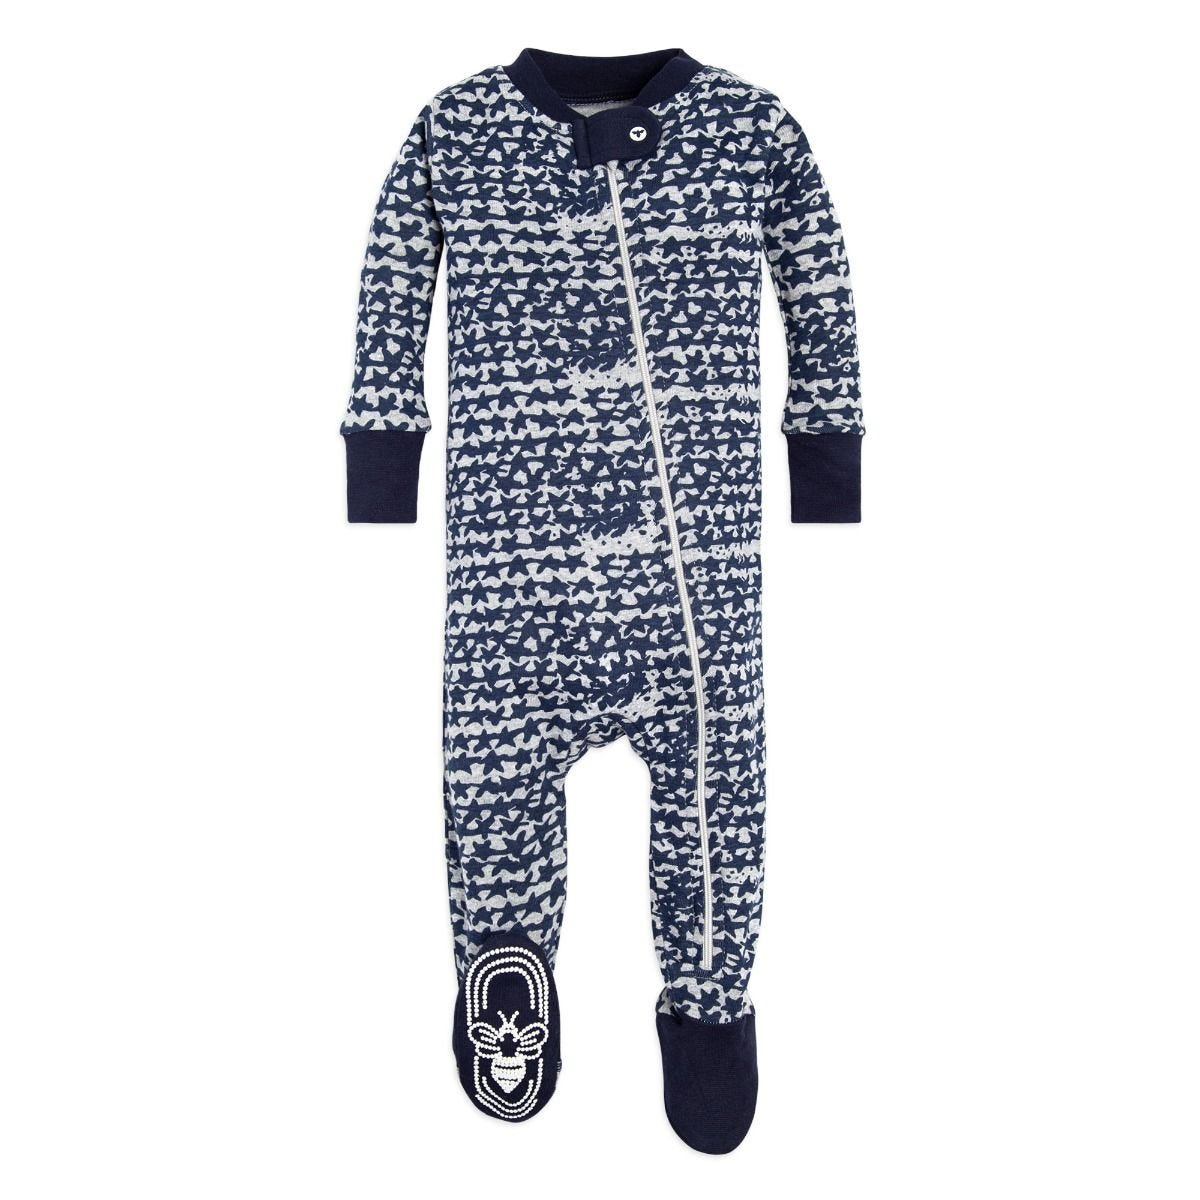 e1c9b5c49 Clustered Star Organic Baby Zip Up Footed Pajamas